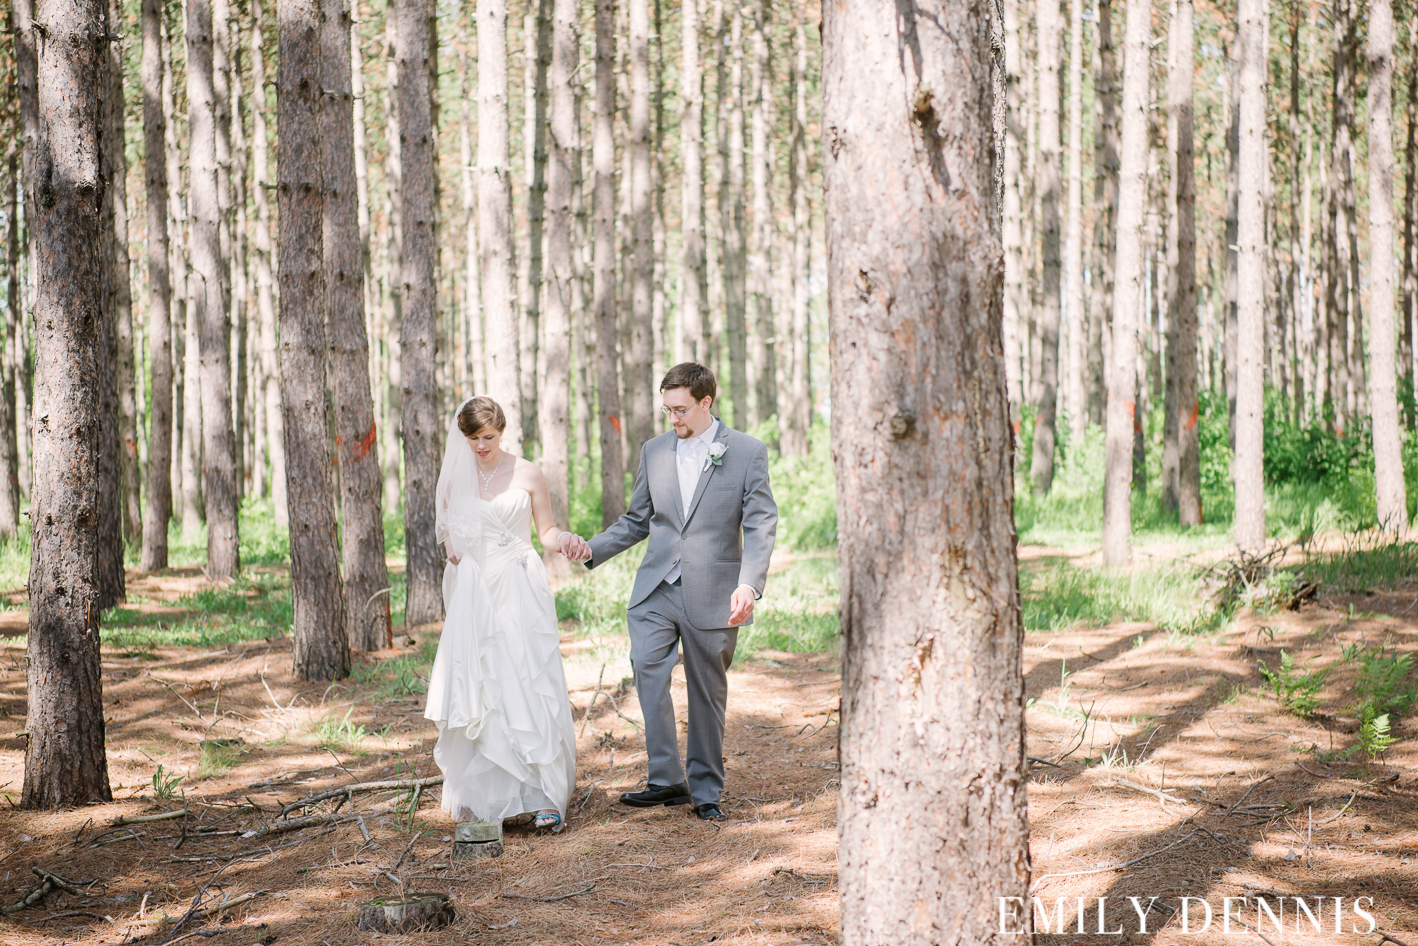 EMILY_DENNIS_PHOTOGRAPHY-71